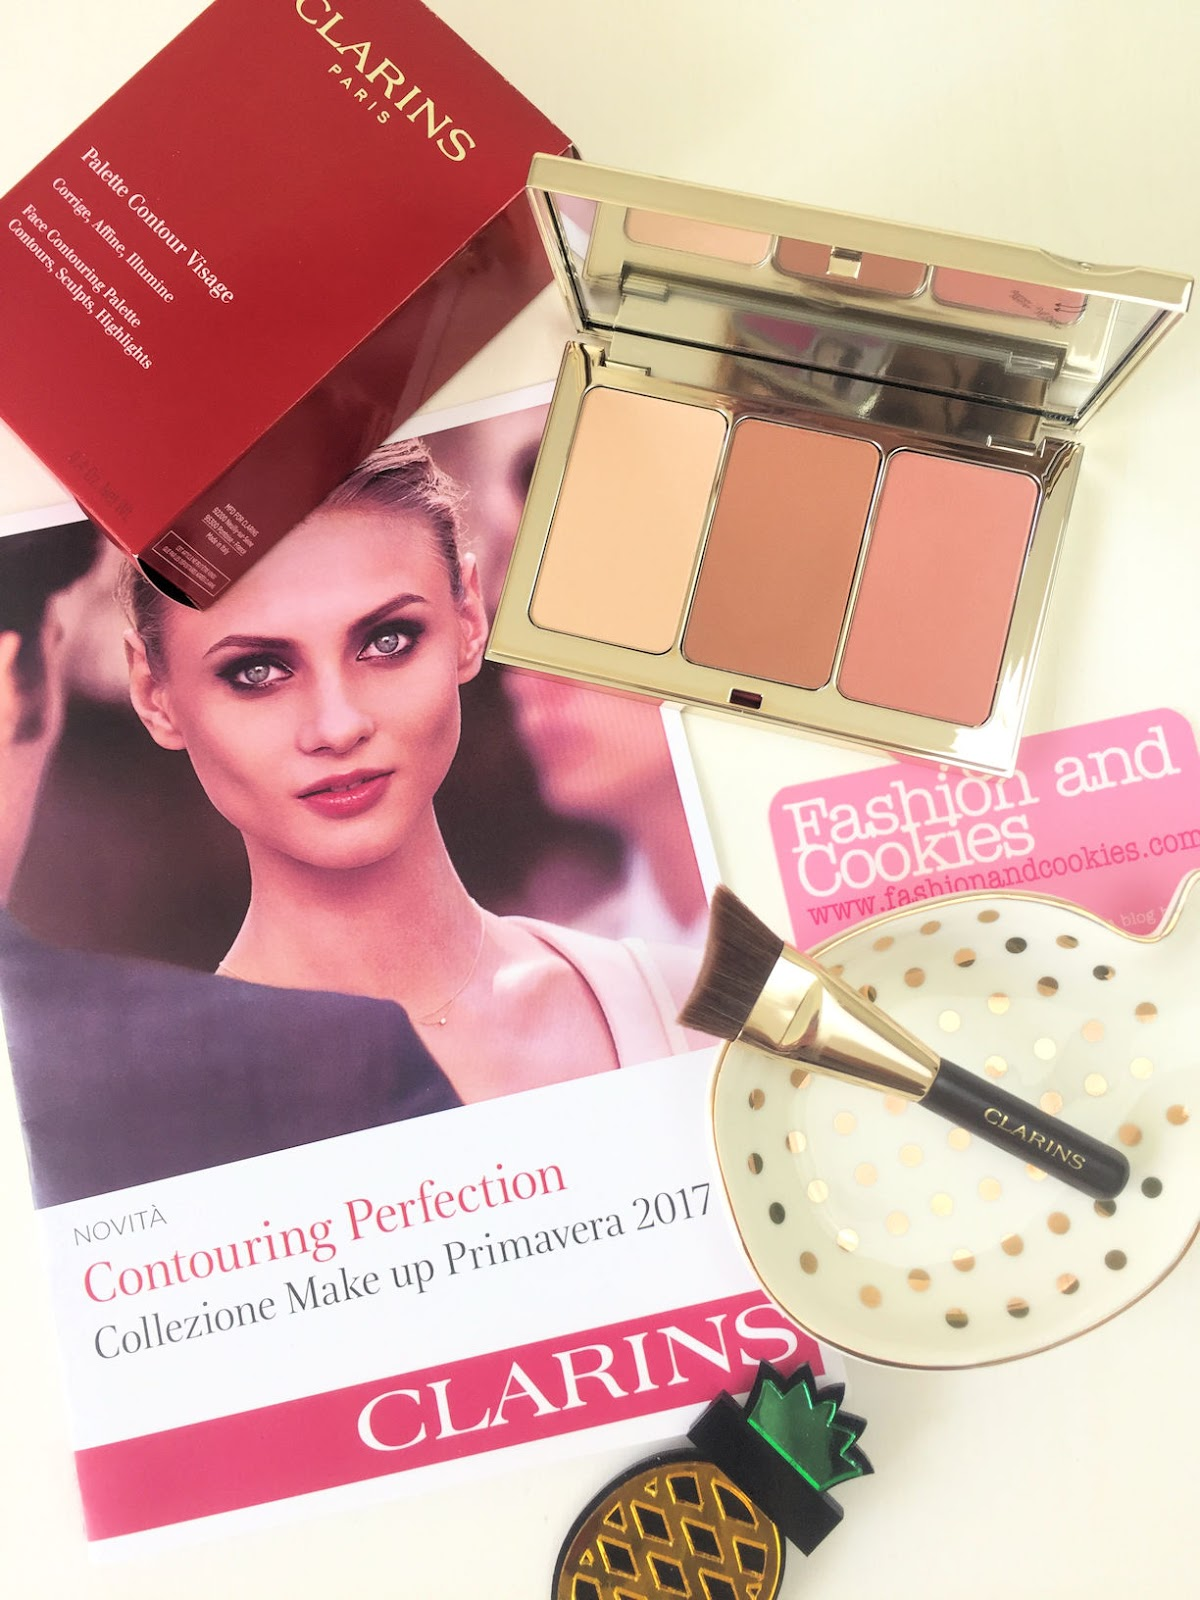 Clarins Face Contouring Palette makeup Spring 2017 review su Fashion and Cookies beauty blog, beauty blogger